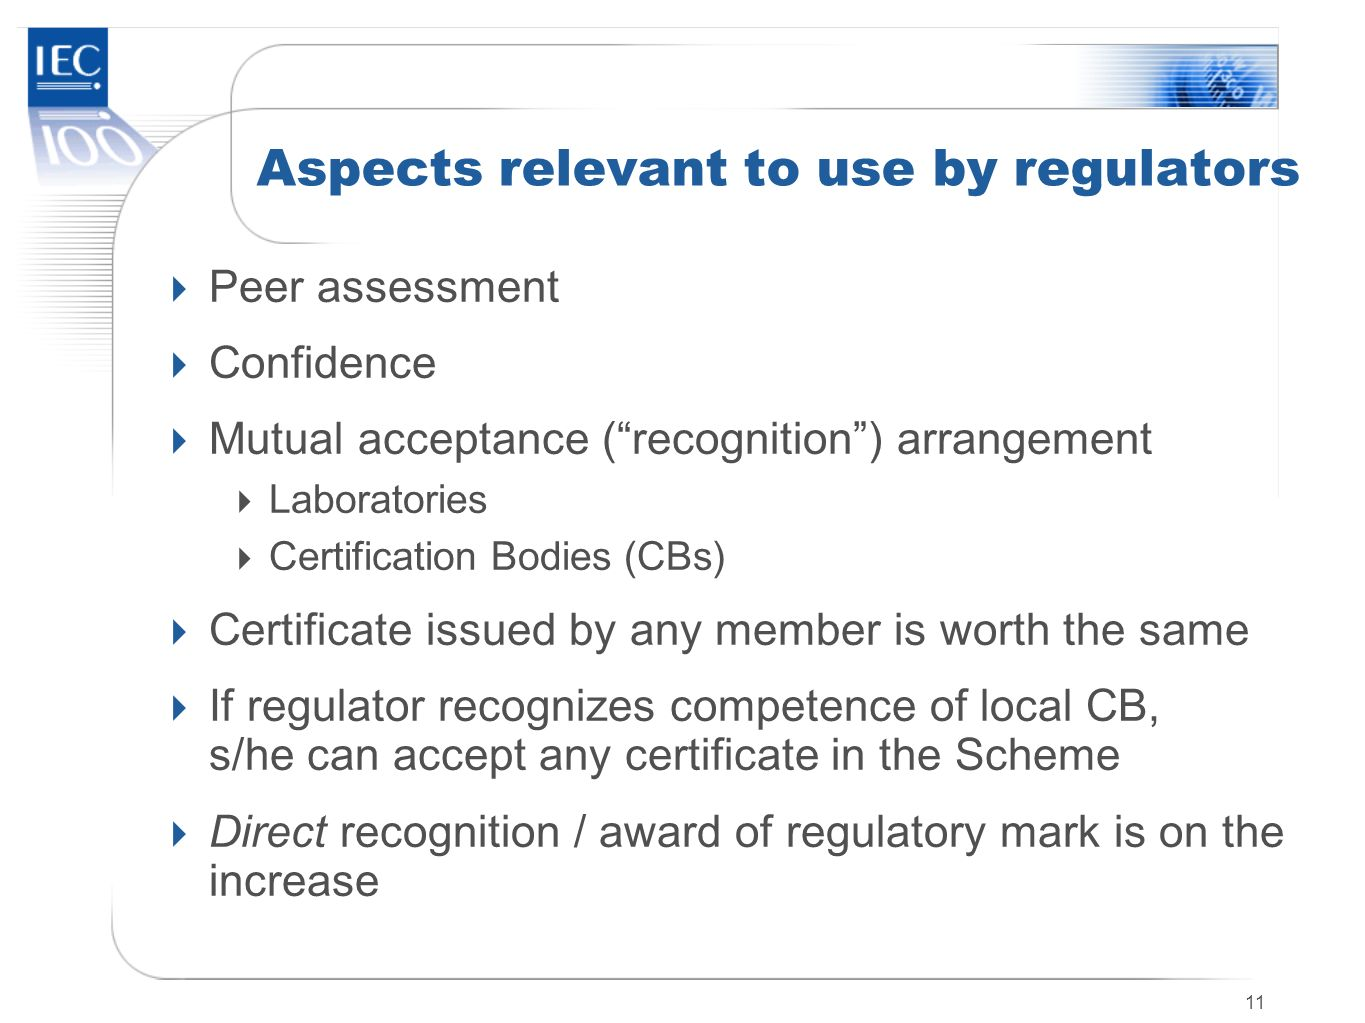 Aspects relevant to use by regulators